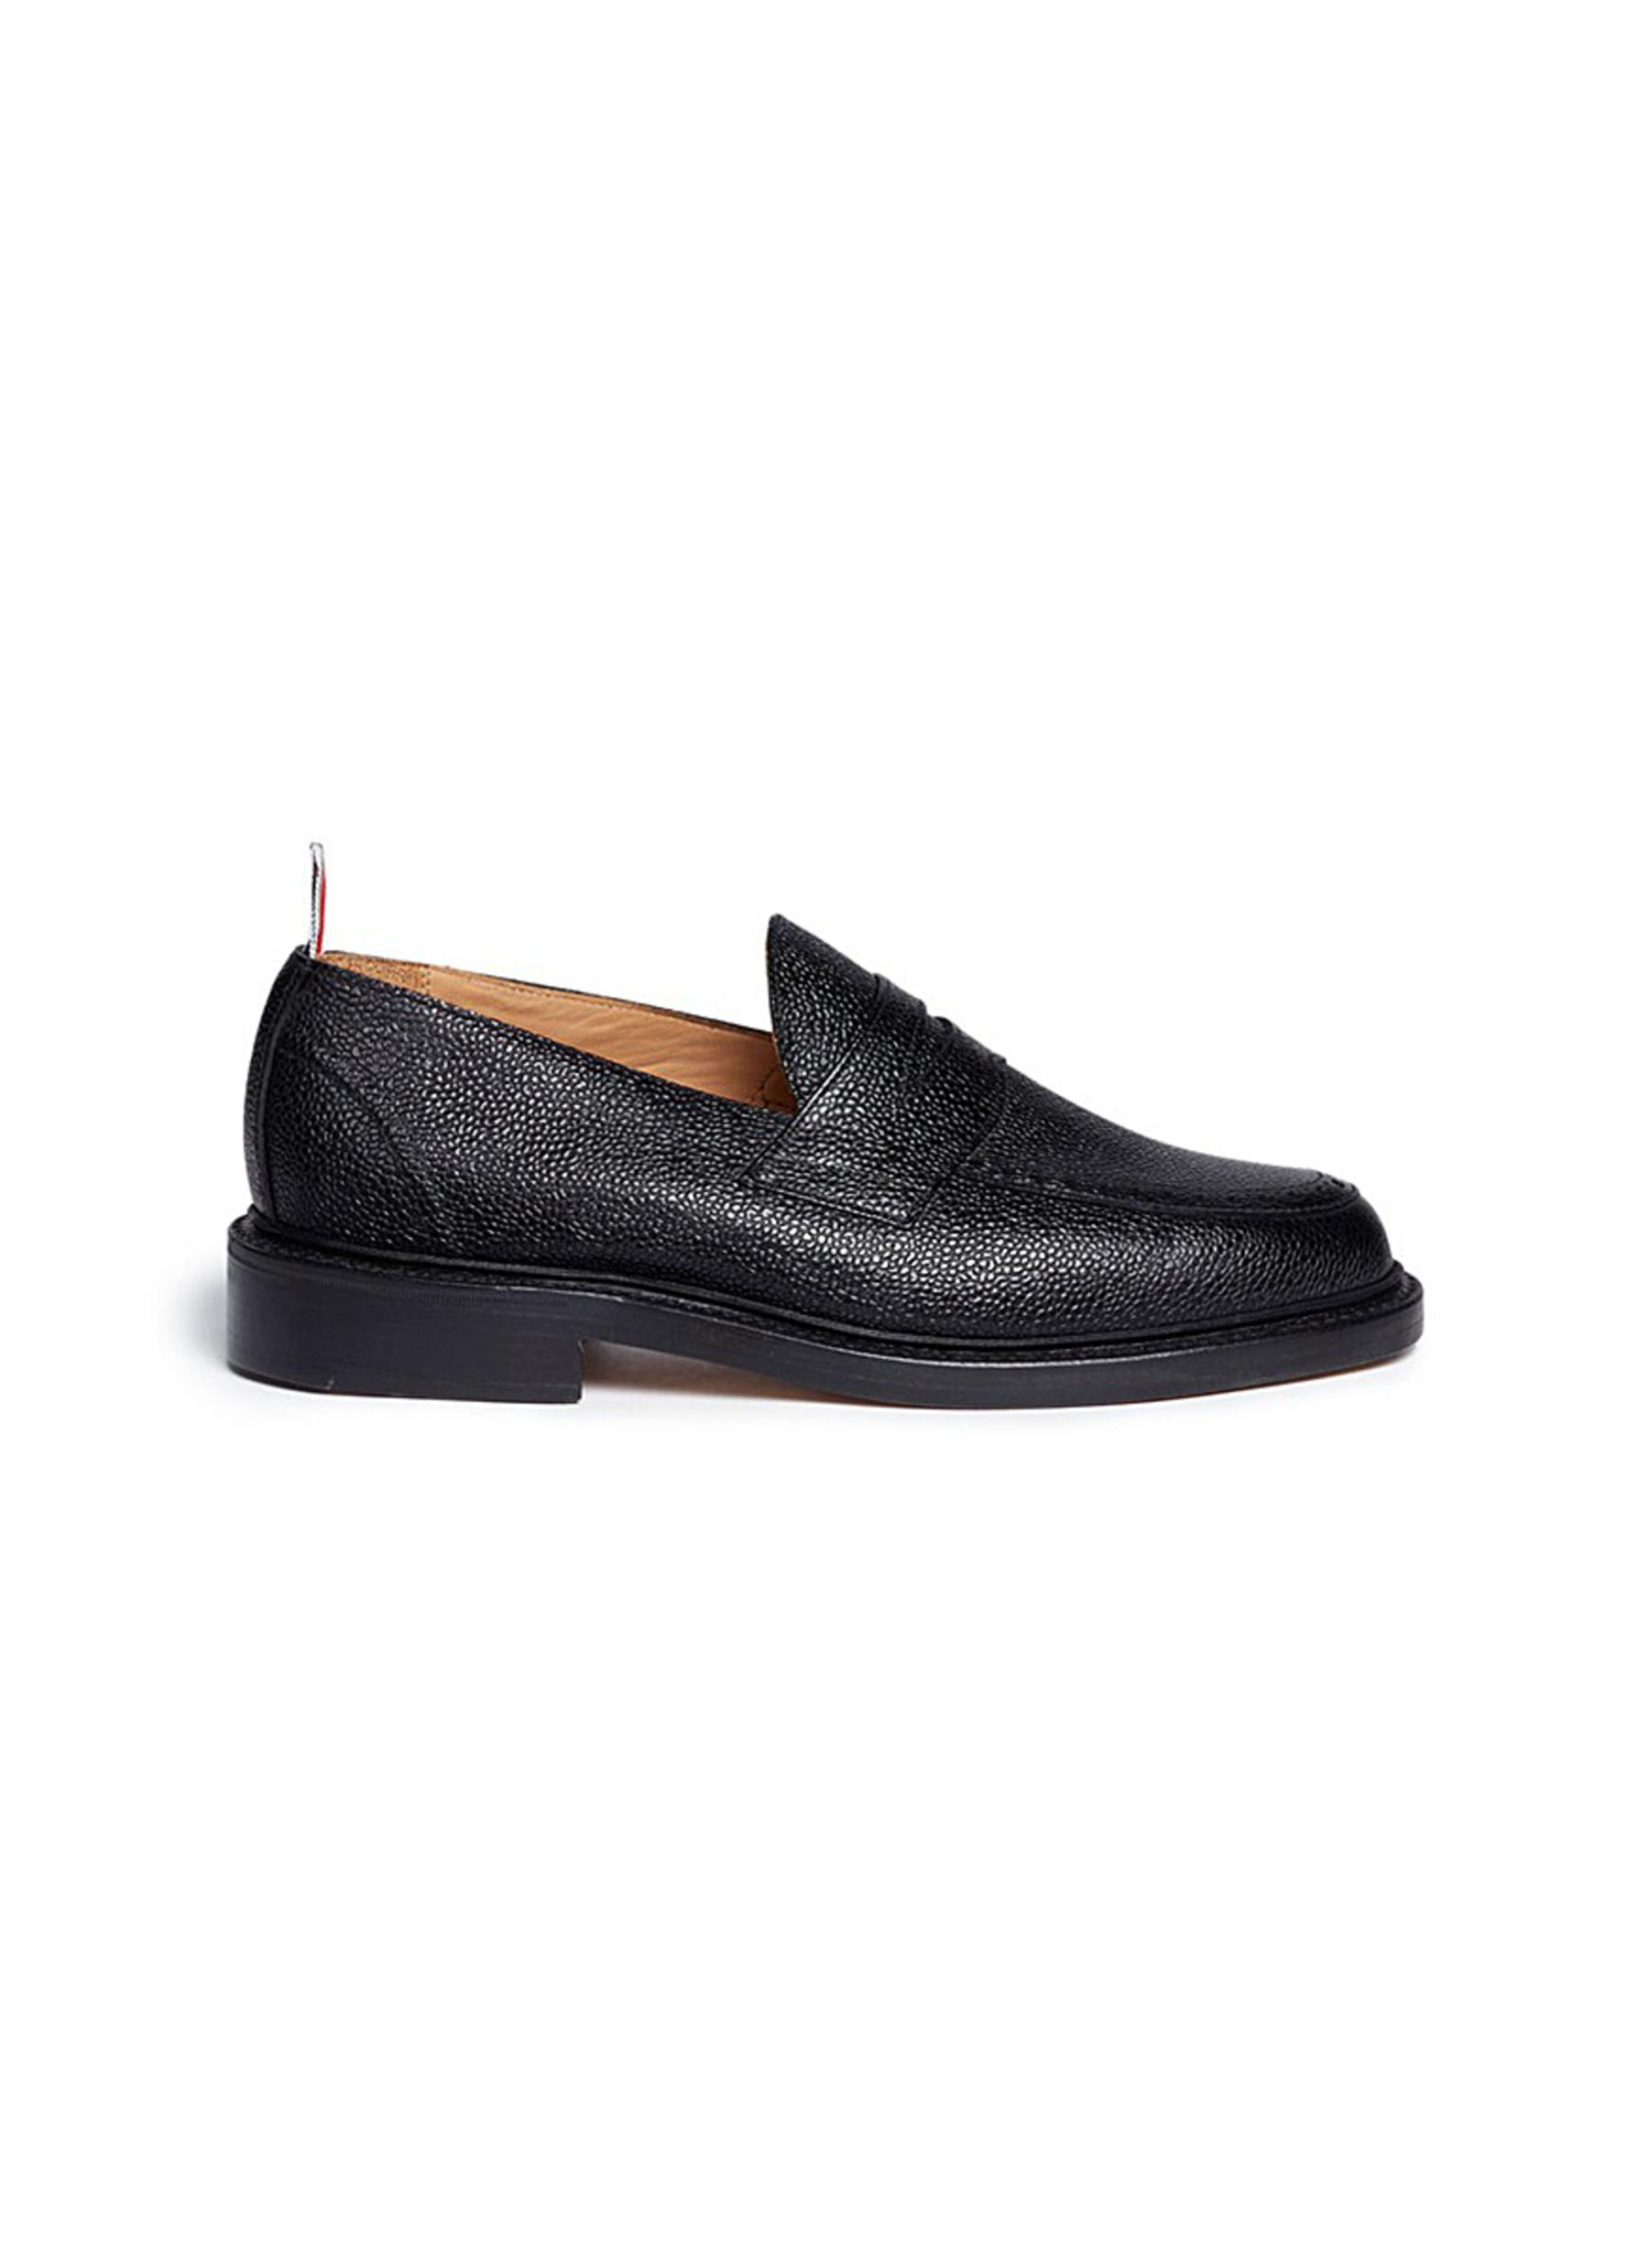 Pebble grain leather penny loafers by Thom Browne